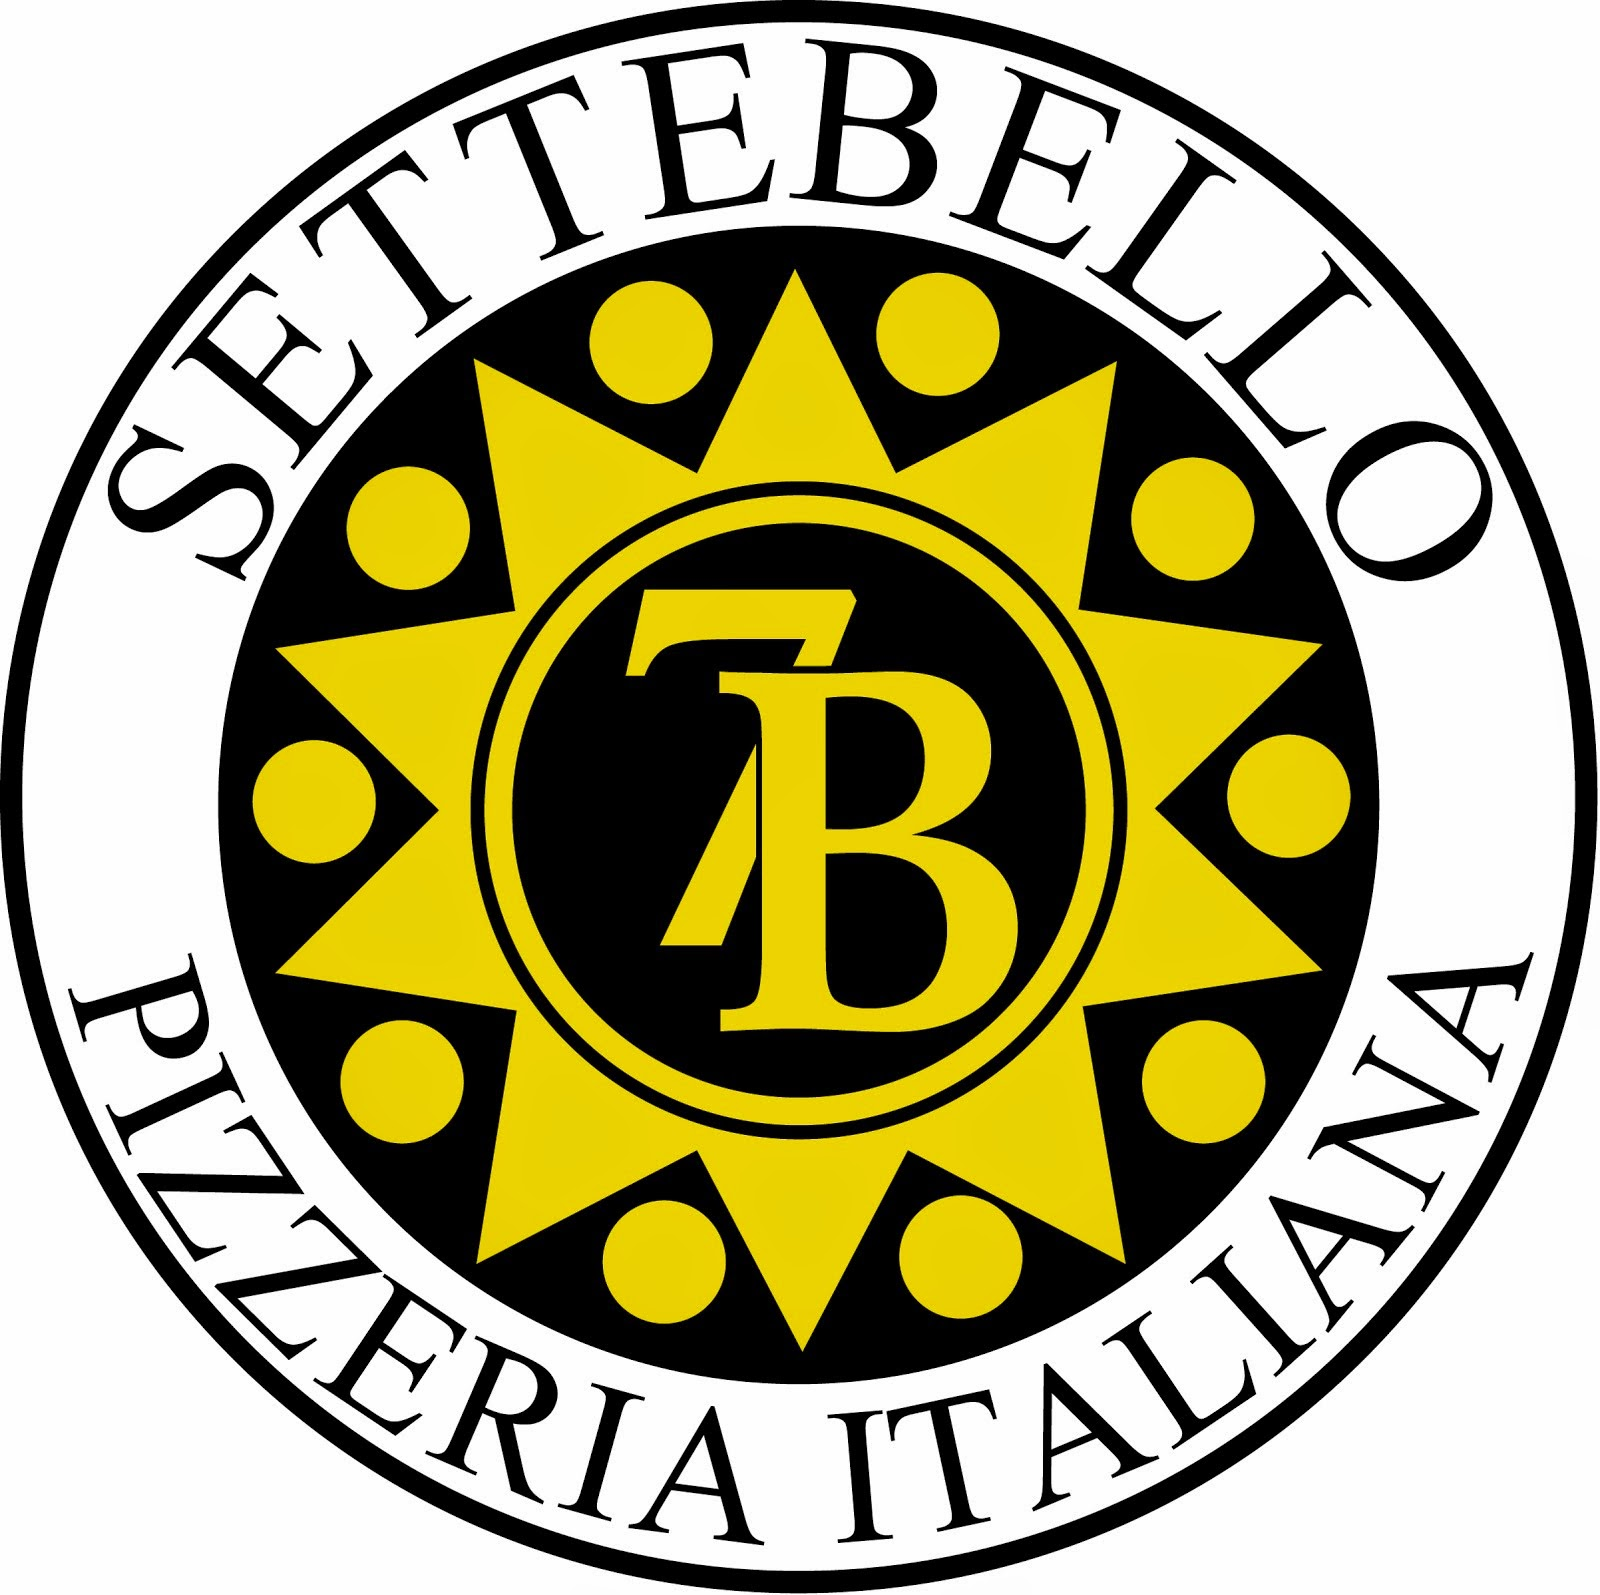 15% off at Settebello Pizzeria Italiana